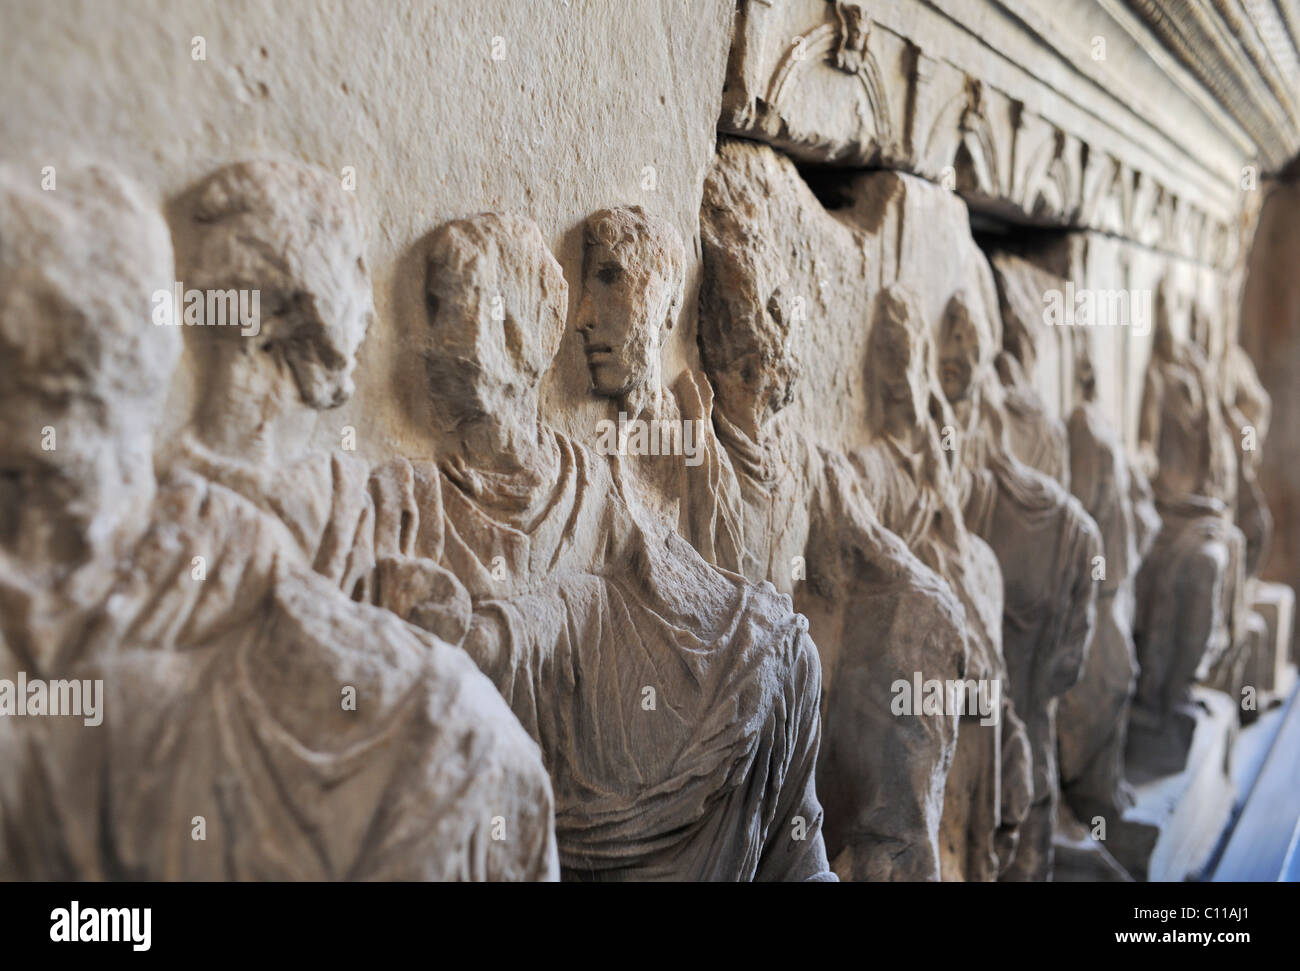 Exhibition on the Flavian imperial family in the Curia in the Roman Forum, Rome, Italy, Europe - Stock Image